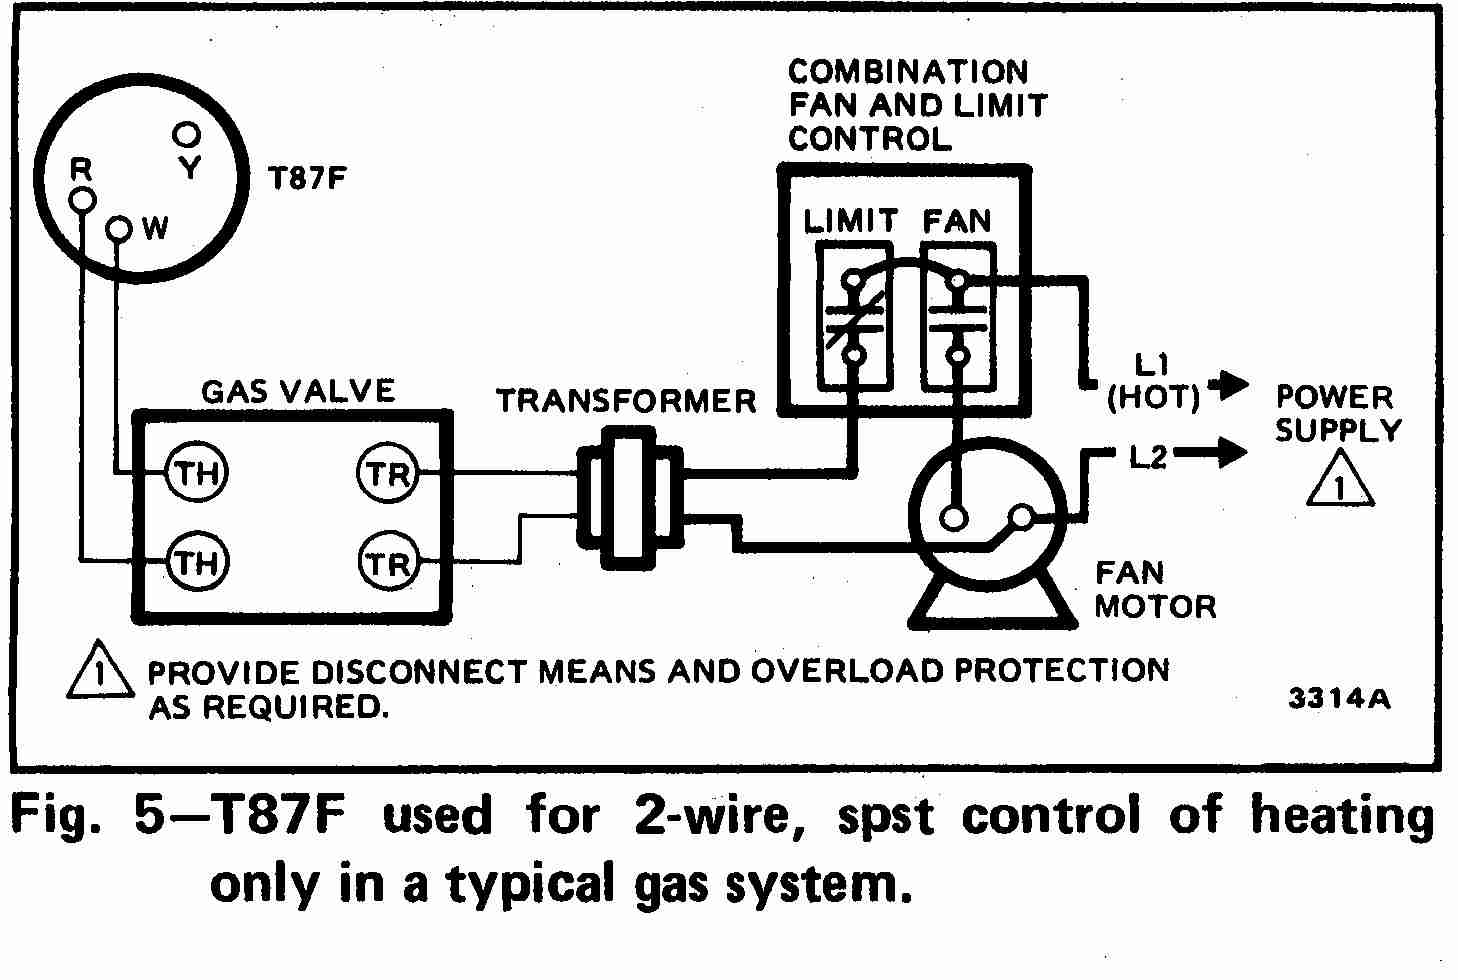 TT_T87F_0002_2Wg_DJF room thermostat wiring diagrams for hvac systems robertshaw gas valve wiring diagram at panicattacktreatment.co